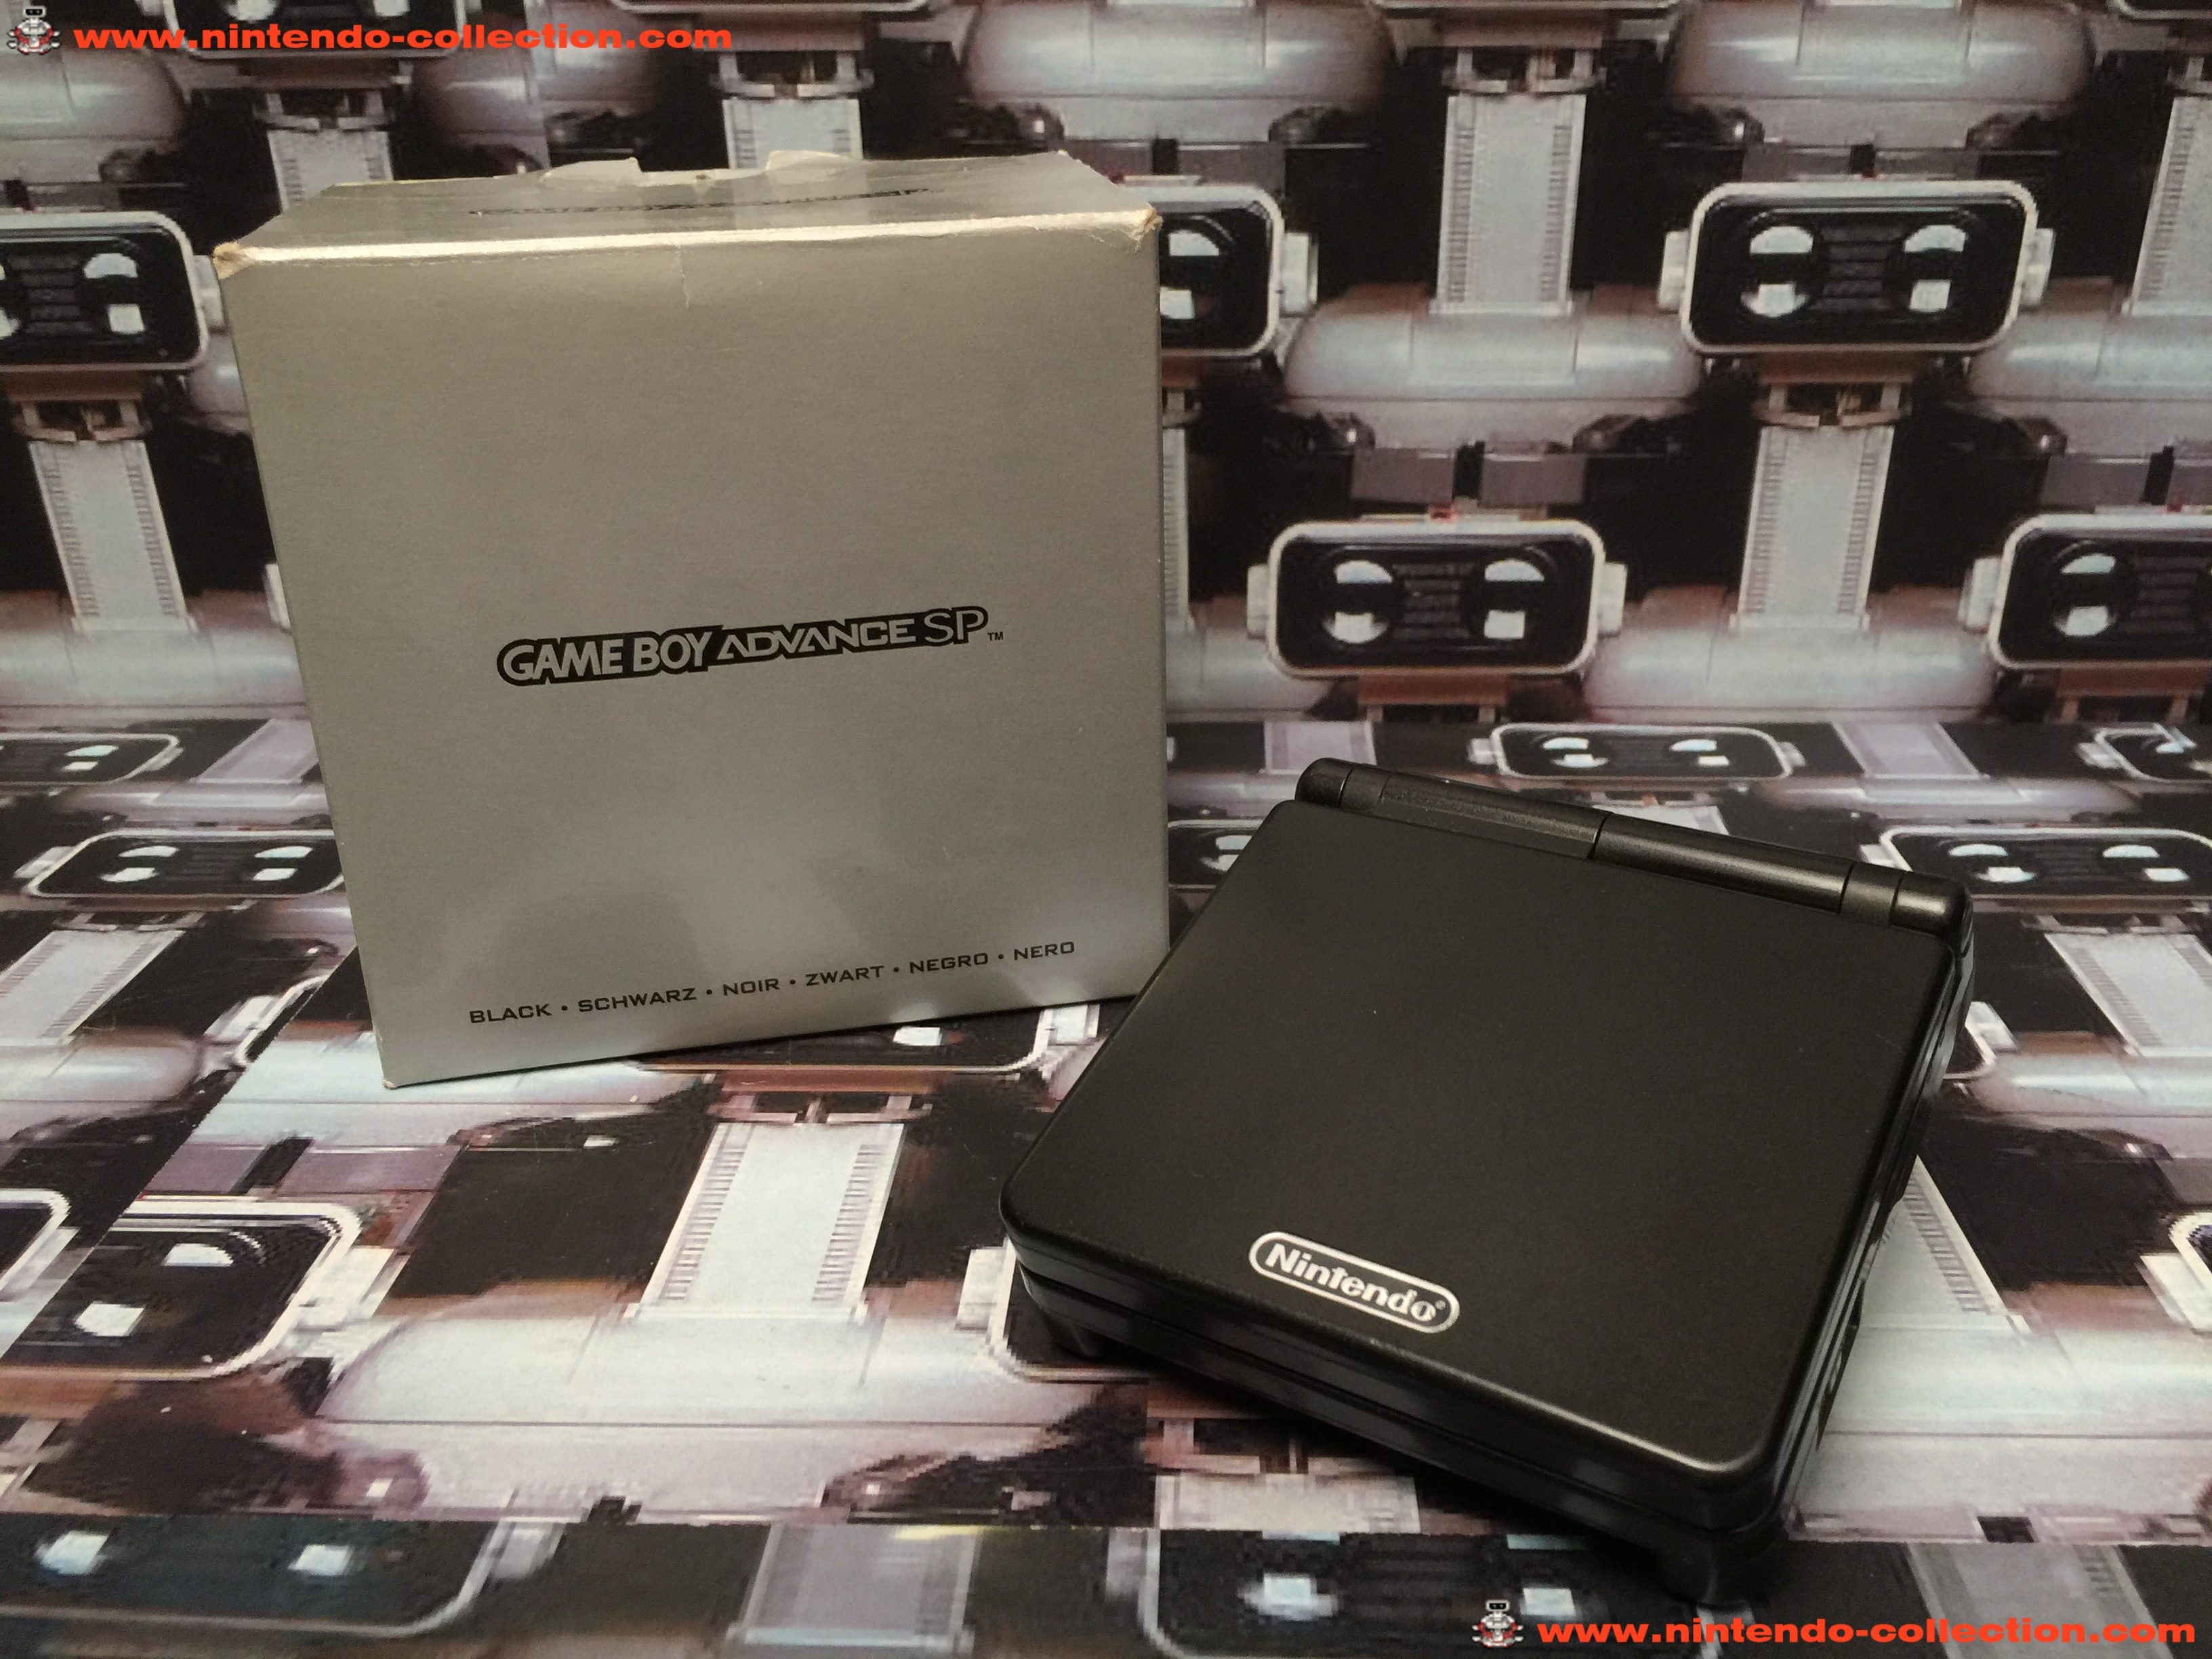 www.nintendo-collection.com - Gameboy Advance GBA SP Black Noir Edition europeenne european - 01